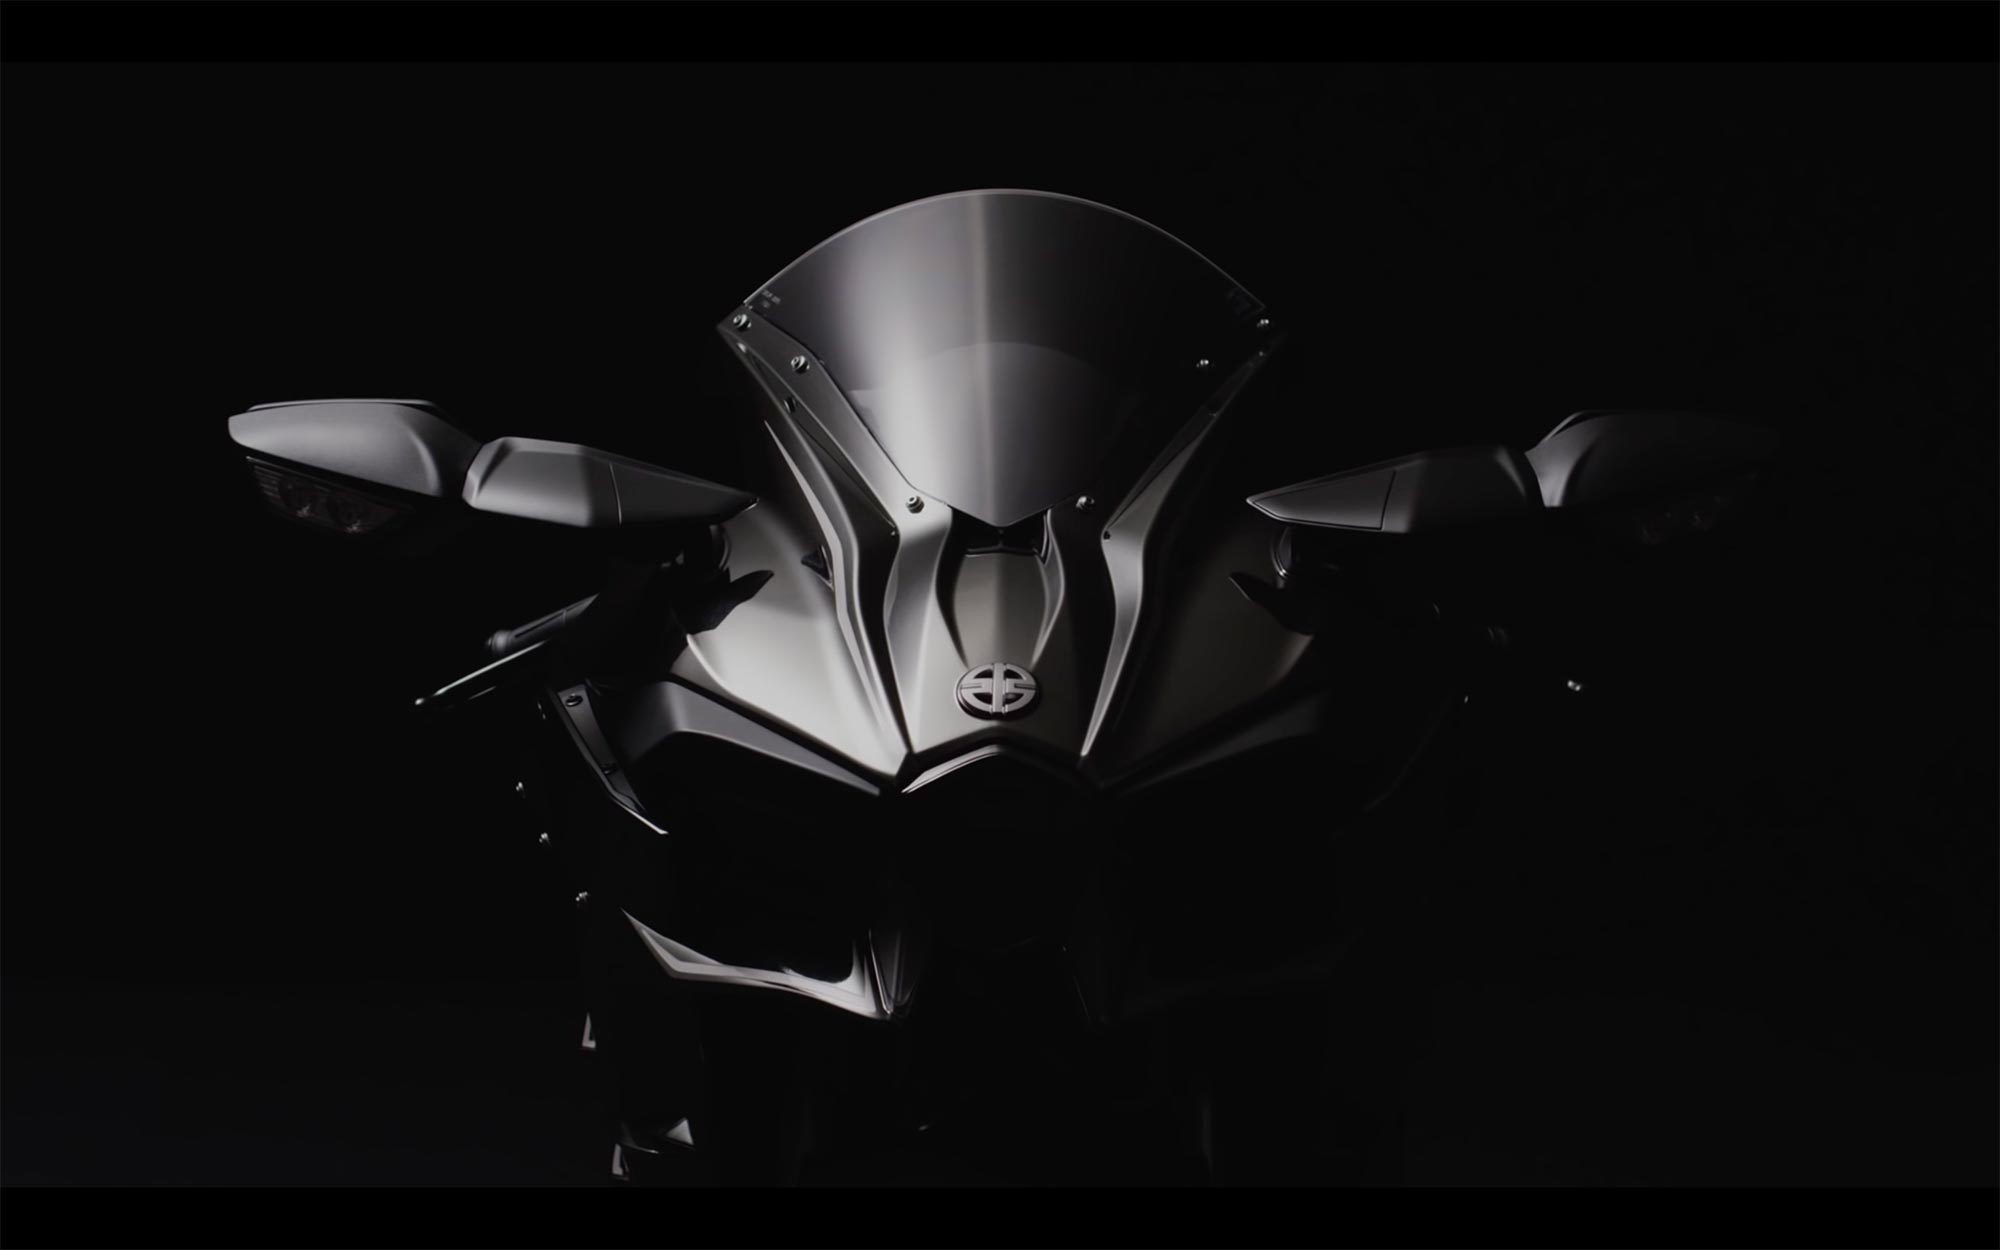 The Kawasaki Ninja H2 Gets Murdered For 2016